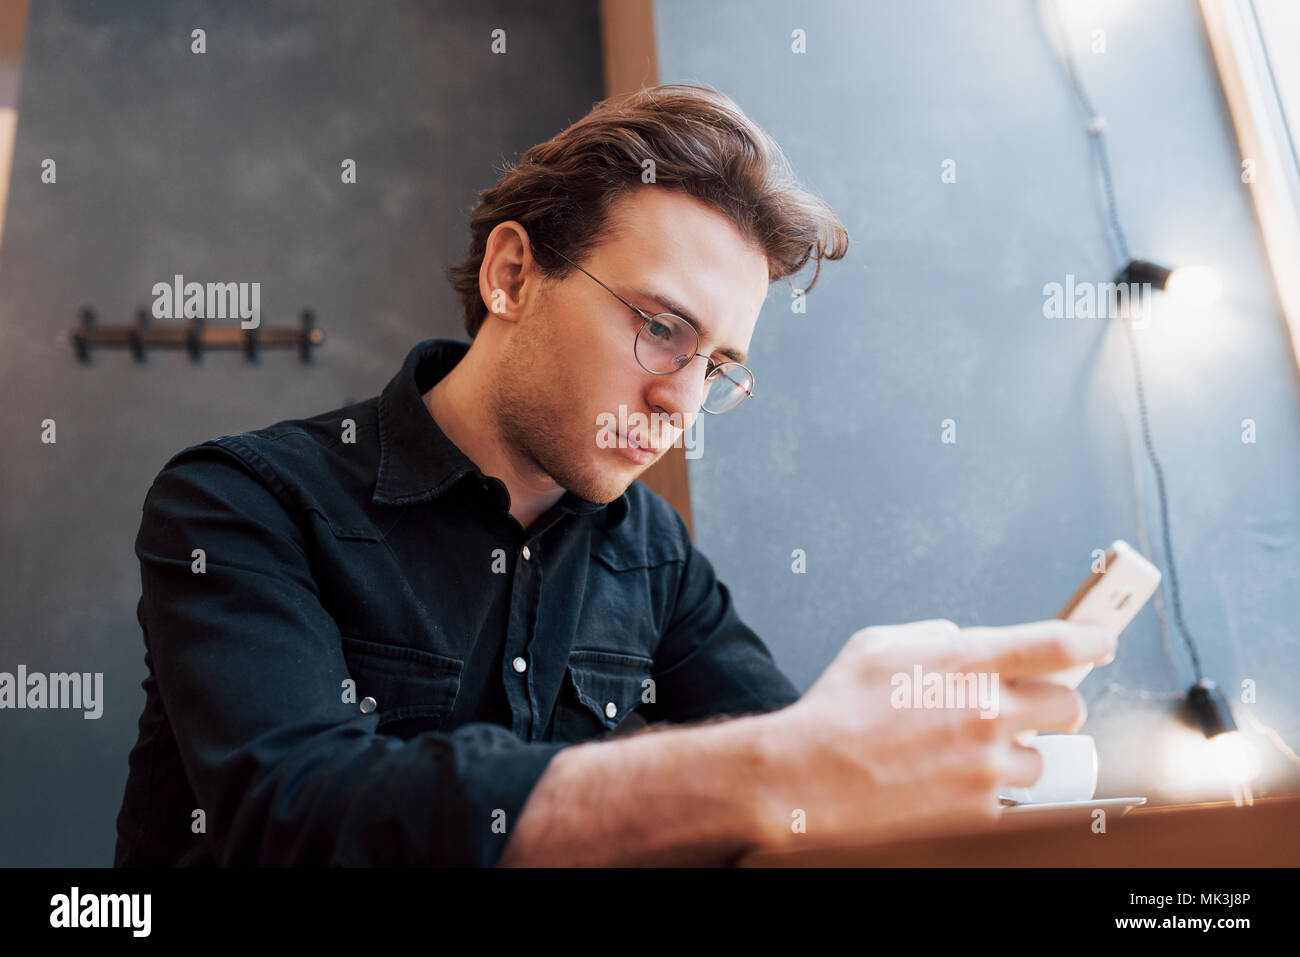 Close-up of man received good news on smart phone, Man resting in cafe and texting new mail messages, blurred background, shallow DOF - Stock Image